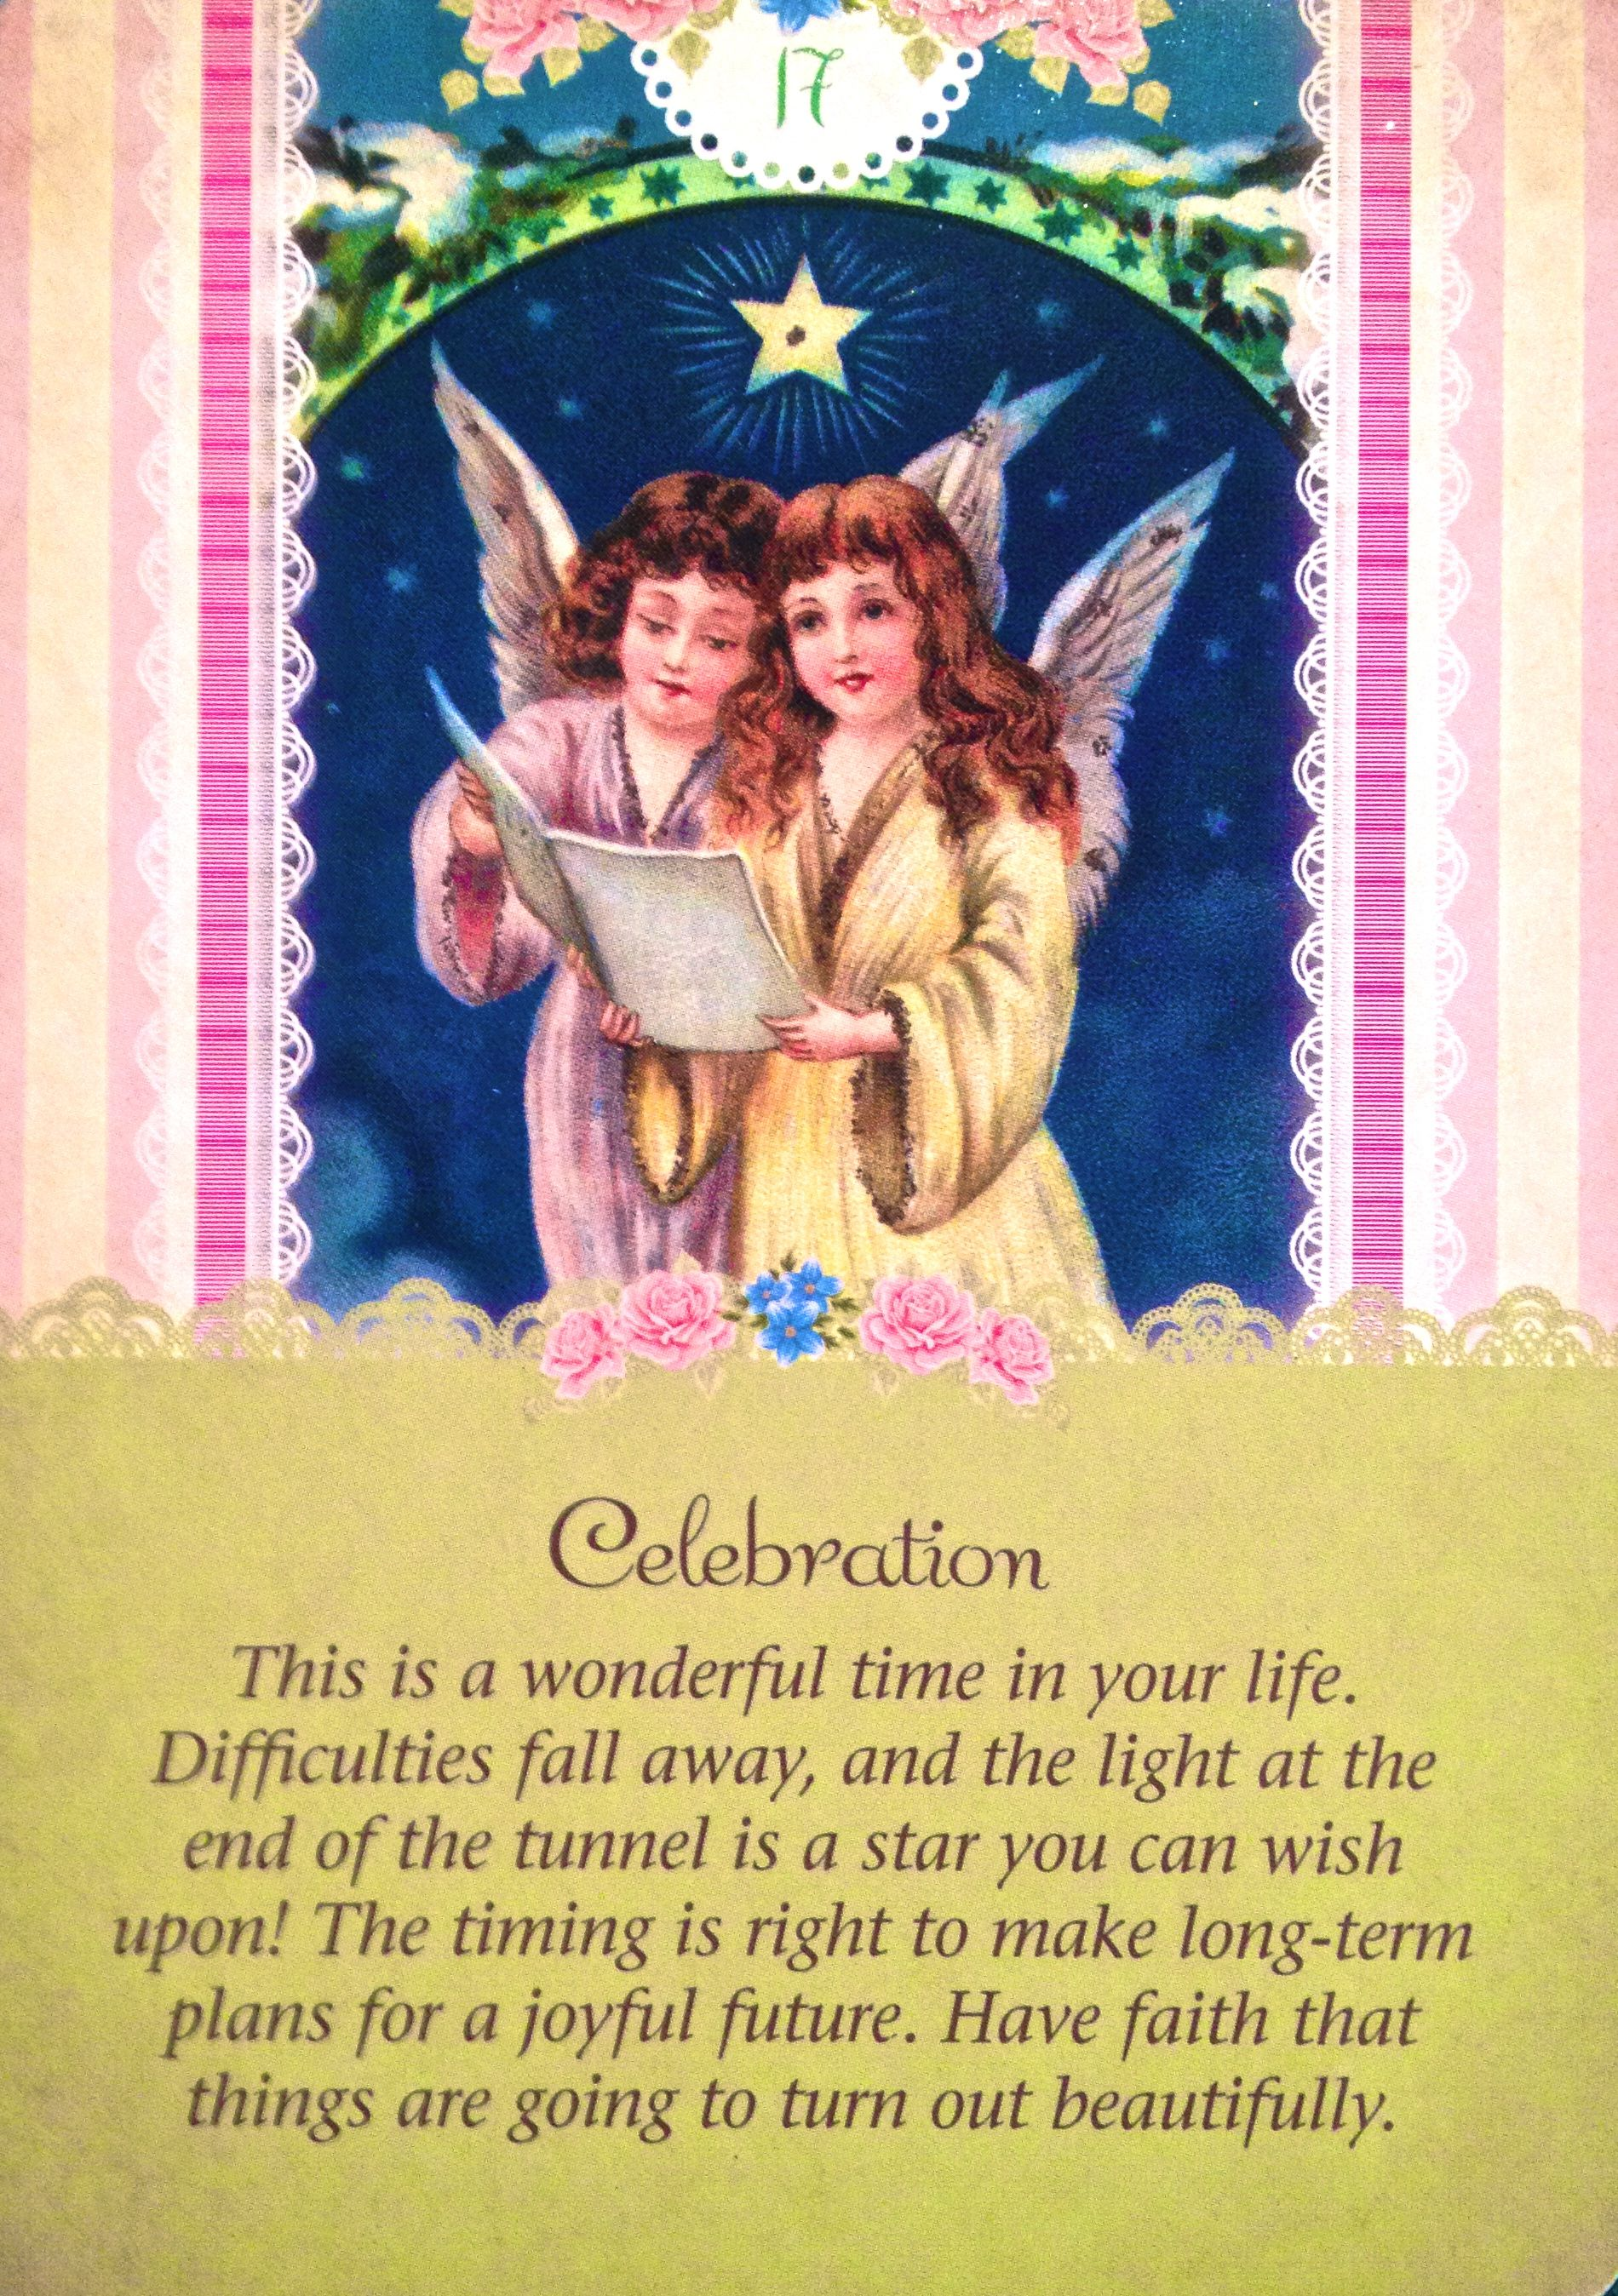 Daily Angel Oracle Card Celebration From The Guardian: Daily Angel Oracle Card: Celebration, From The Guardian